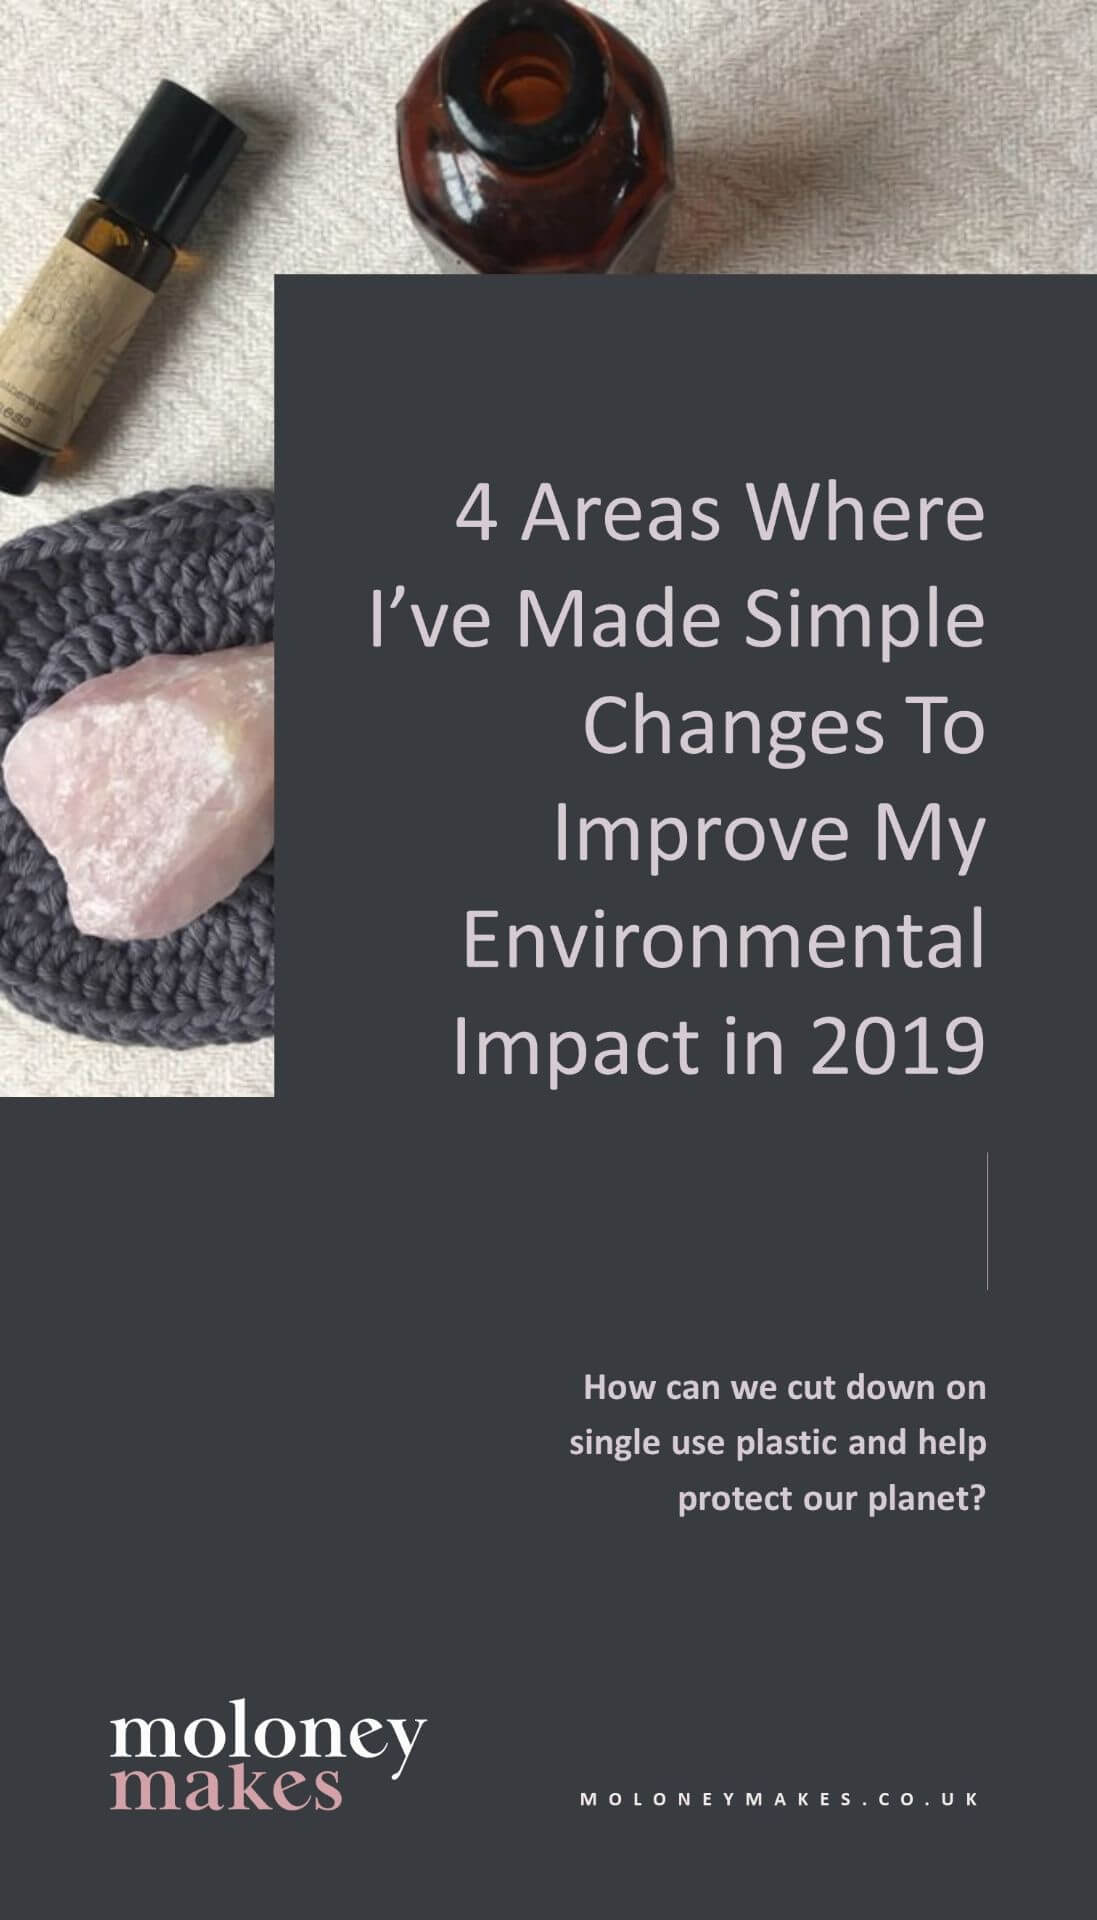 Moloneymakes-Blog-Pinterest-Graphic-4-Areas-Where-I've-Made-Simple-Changes-To-Improve-My-Enviromental-Impact-In-2019